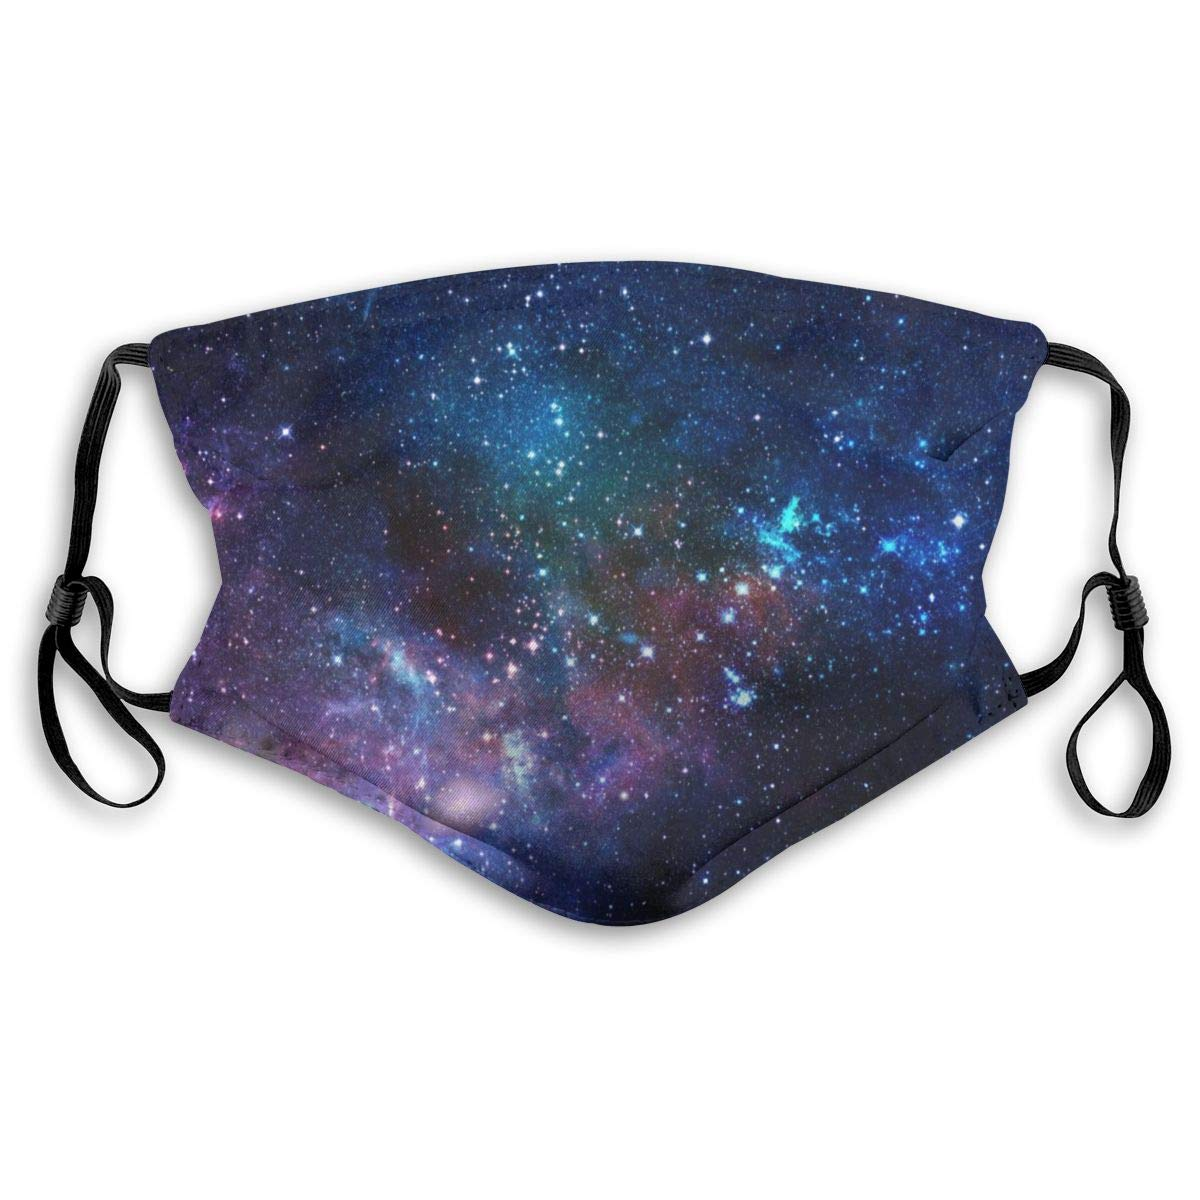 Outer Space Galaxy Stary Washable Reusable Mask, Anti Dust Half Face Mouth Mask For Kids Teens Men Women With Adjustable Ear